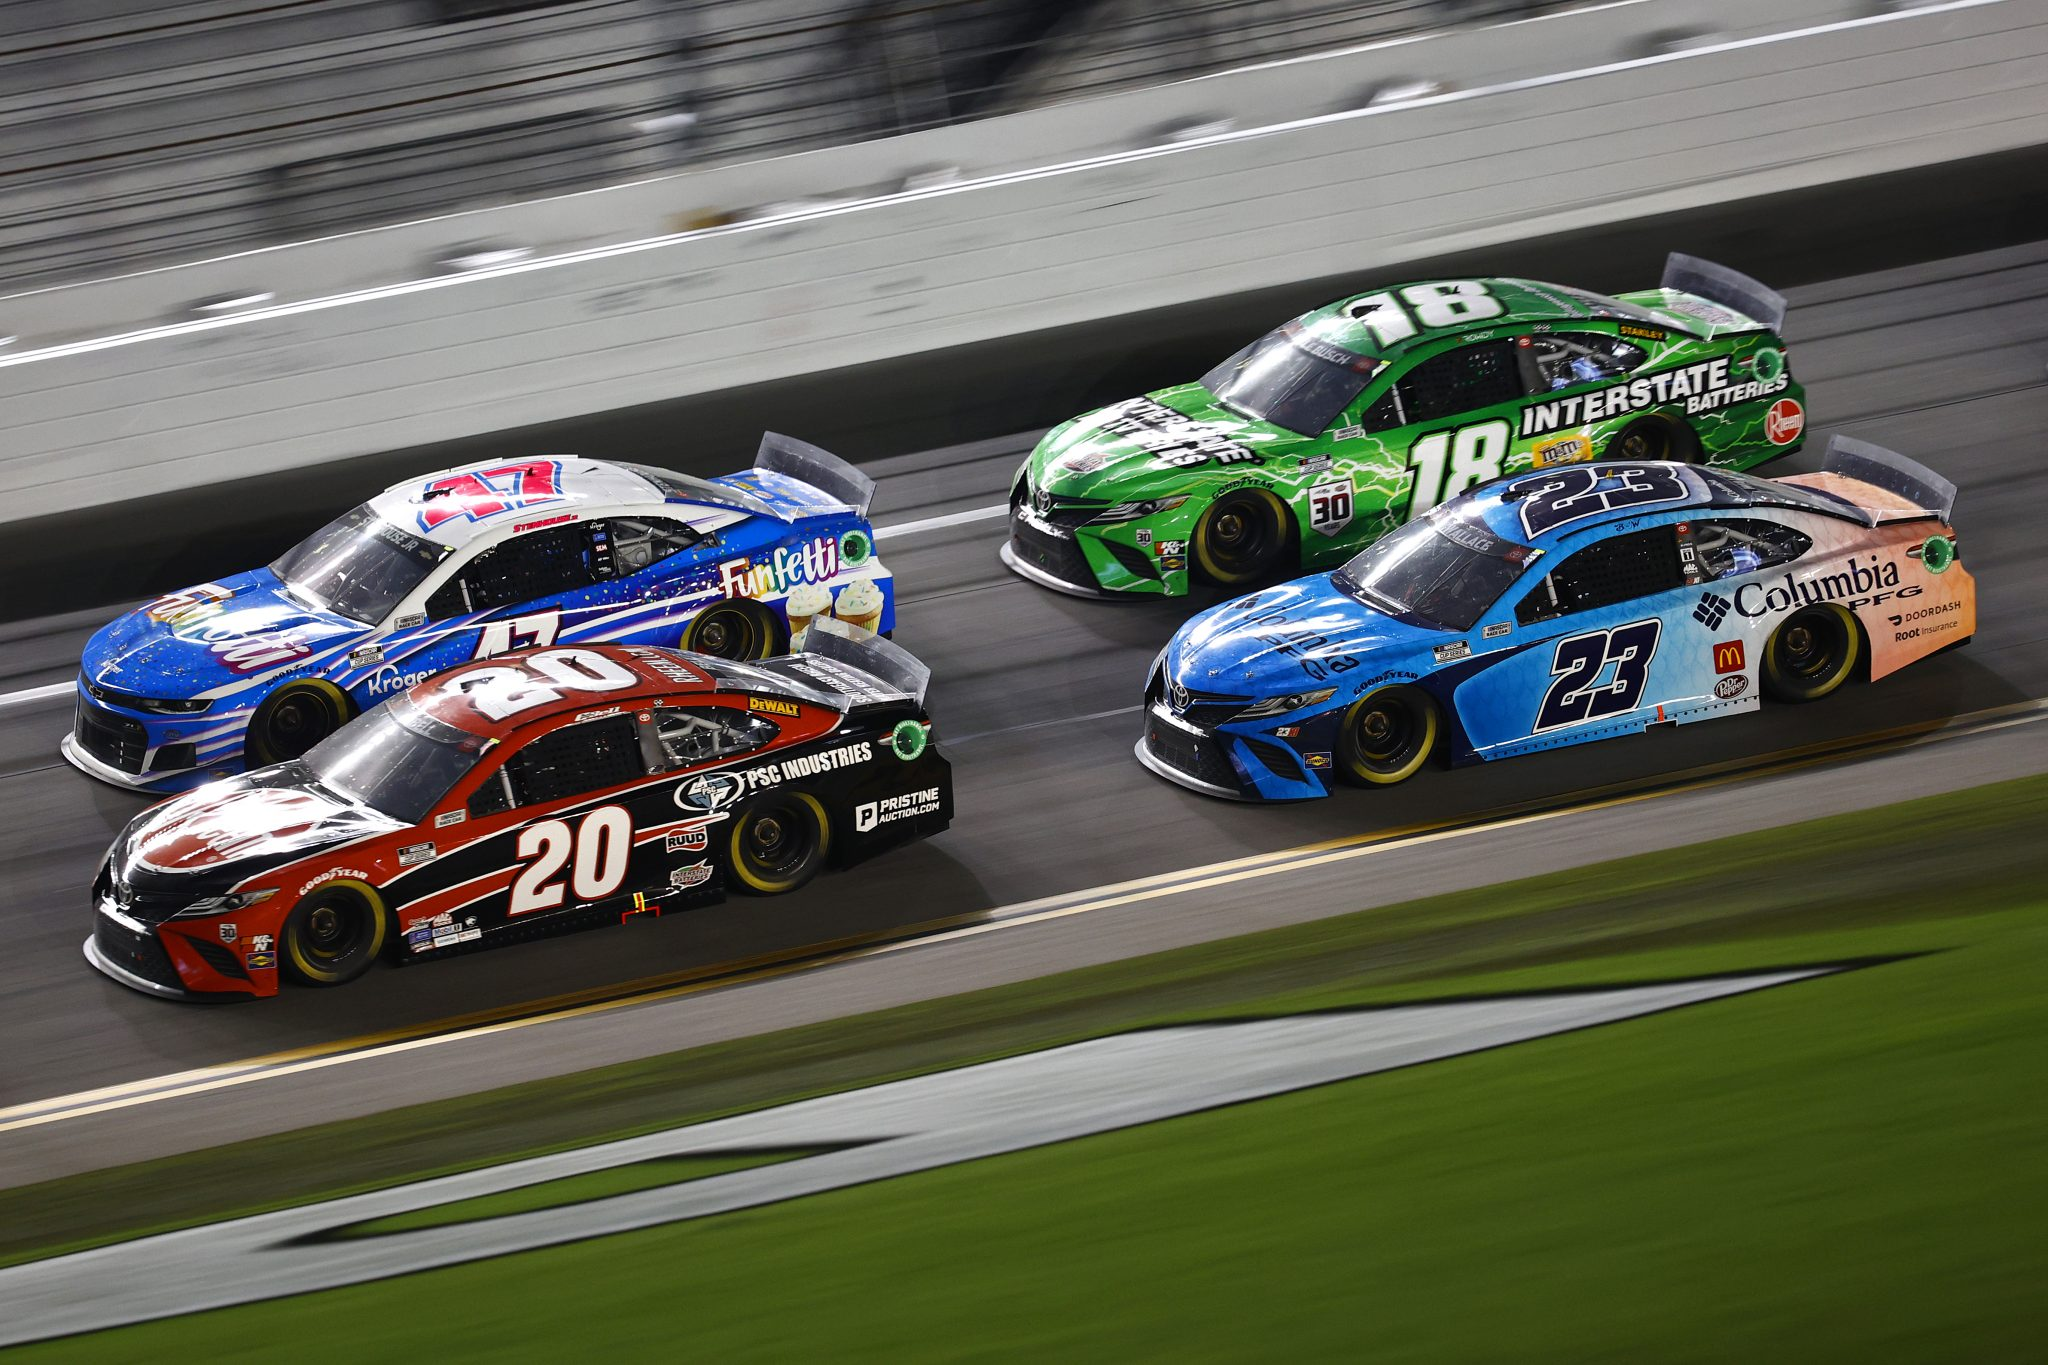 DAYTONA BEACH, FLORIDA - AUGUST 28: Christopher Bell, driver of the #20 Rheem Toyota, Ricky Stenhouse Jr., driver of the #47 Funfetti Chevrolet, Bubba Wallace, driver of the #23 Columbia PFG Toyota, and Kyle Busch, driver of the #18 Interstate Batteries Toyota, race during the NASCAR Cup Series Coke Zero Sugar 400 at Daytona International Speedway on August 28, 2021 in Daytona Beach, Florida. (Photo by Jared C. Tilton/Getty Images) | Getty Images